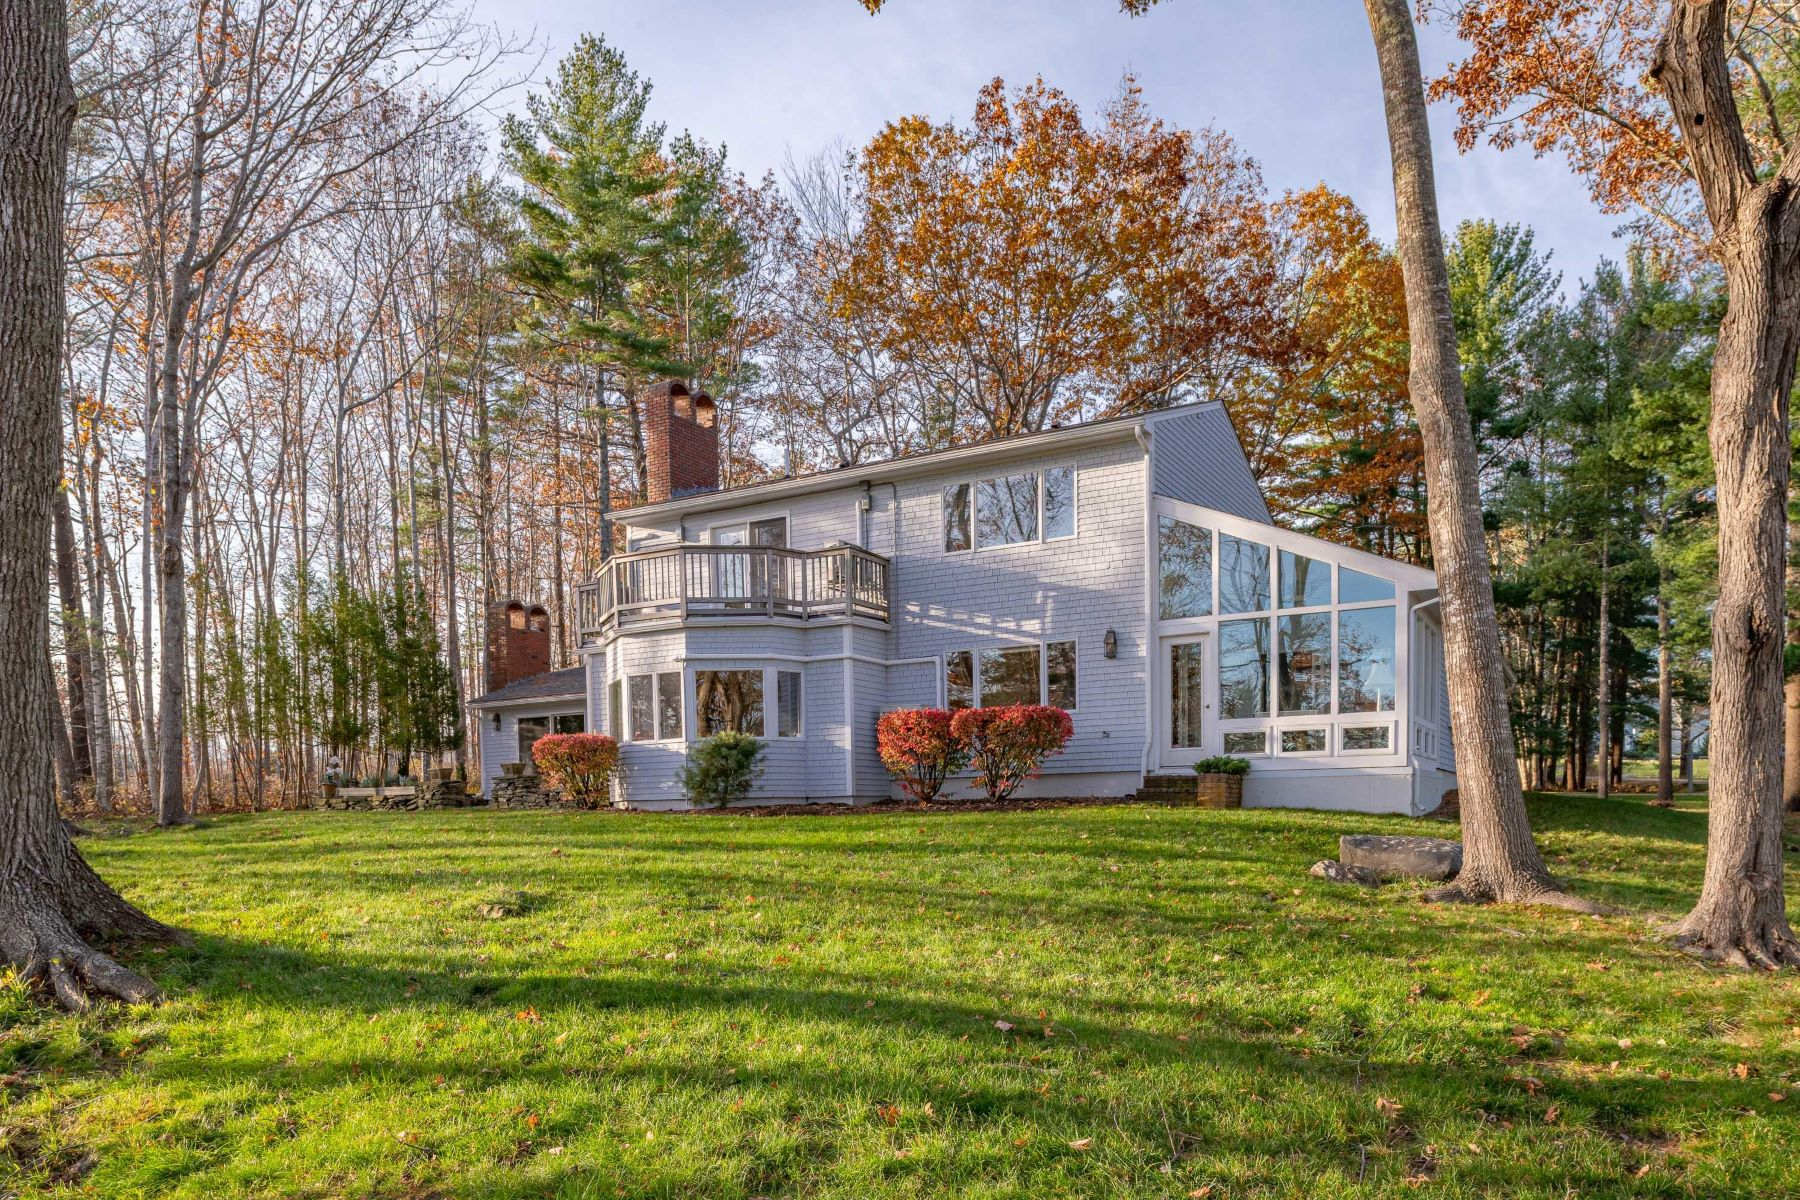 Single Family Homes for Sale at 91 Eastward On The Ocean Rockport, Maine 04856 United States